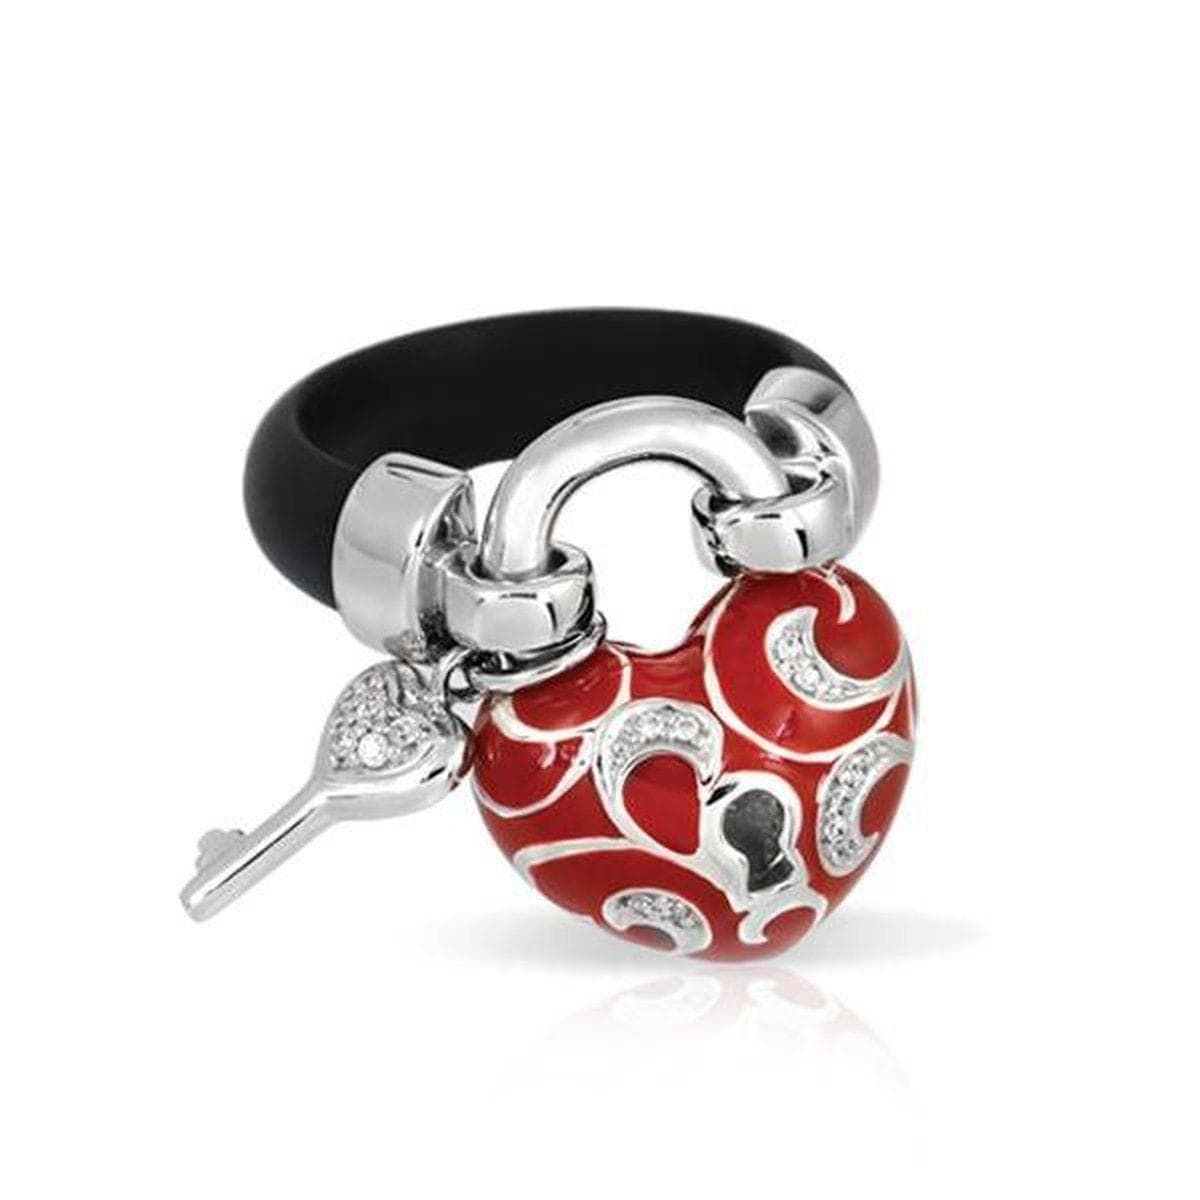 Key to My Heart Red Ring-Belle Etoile-Renee Taylor Gallery